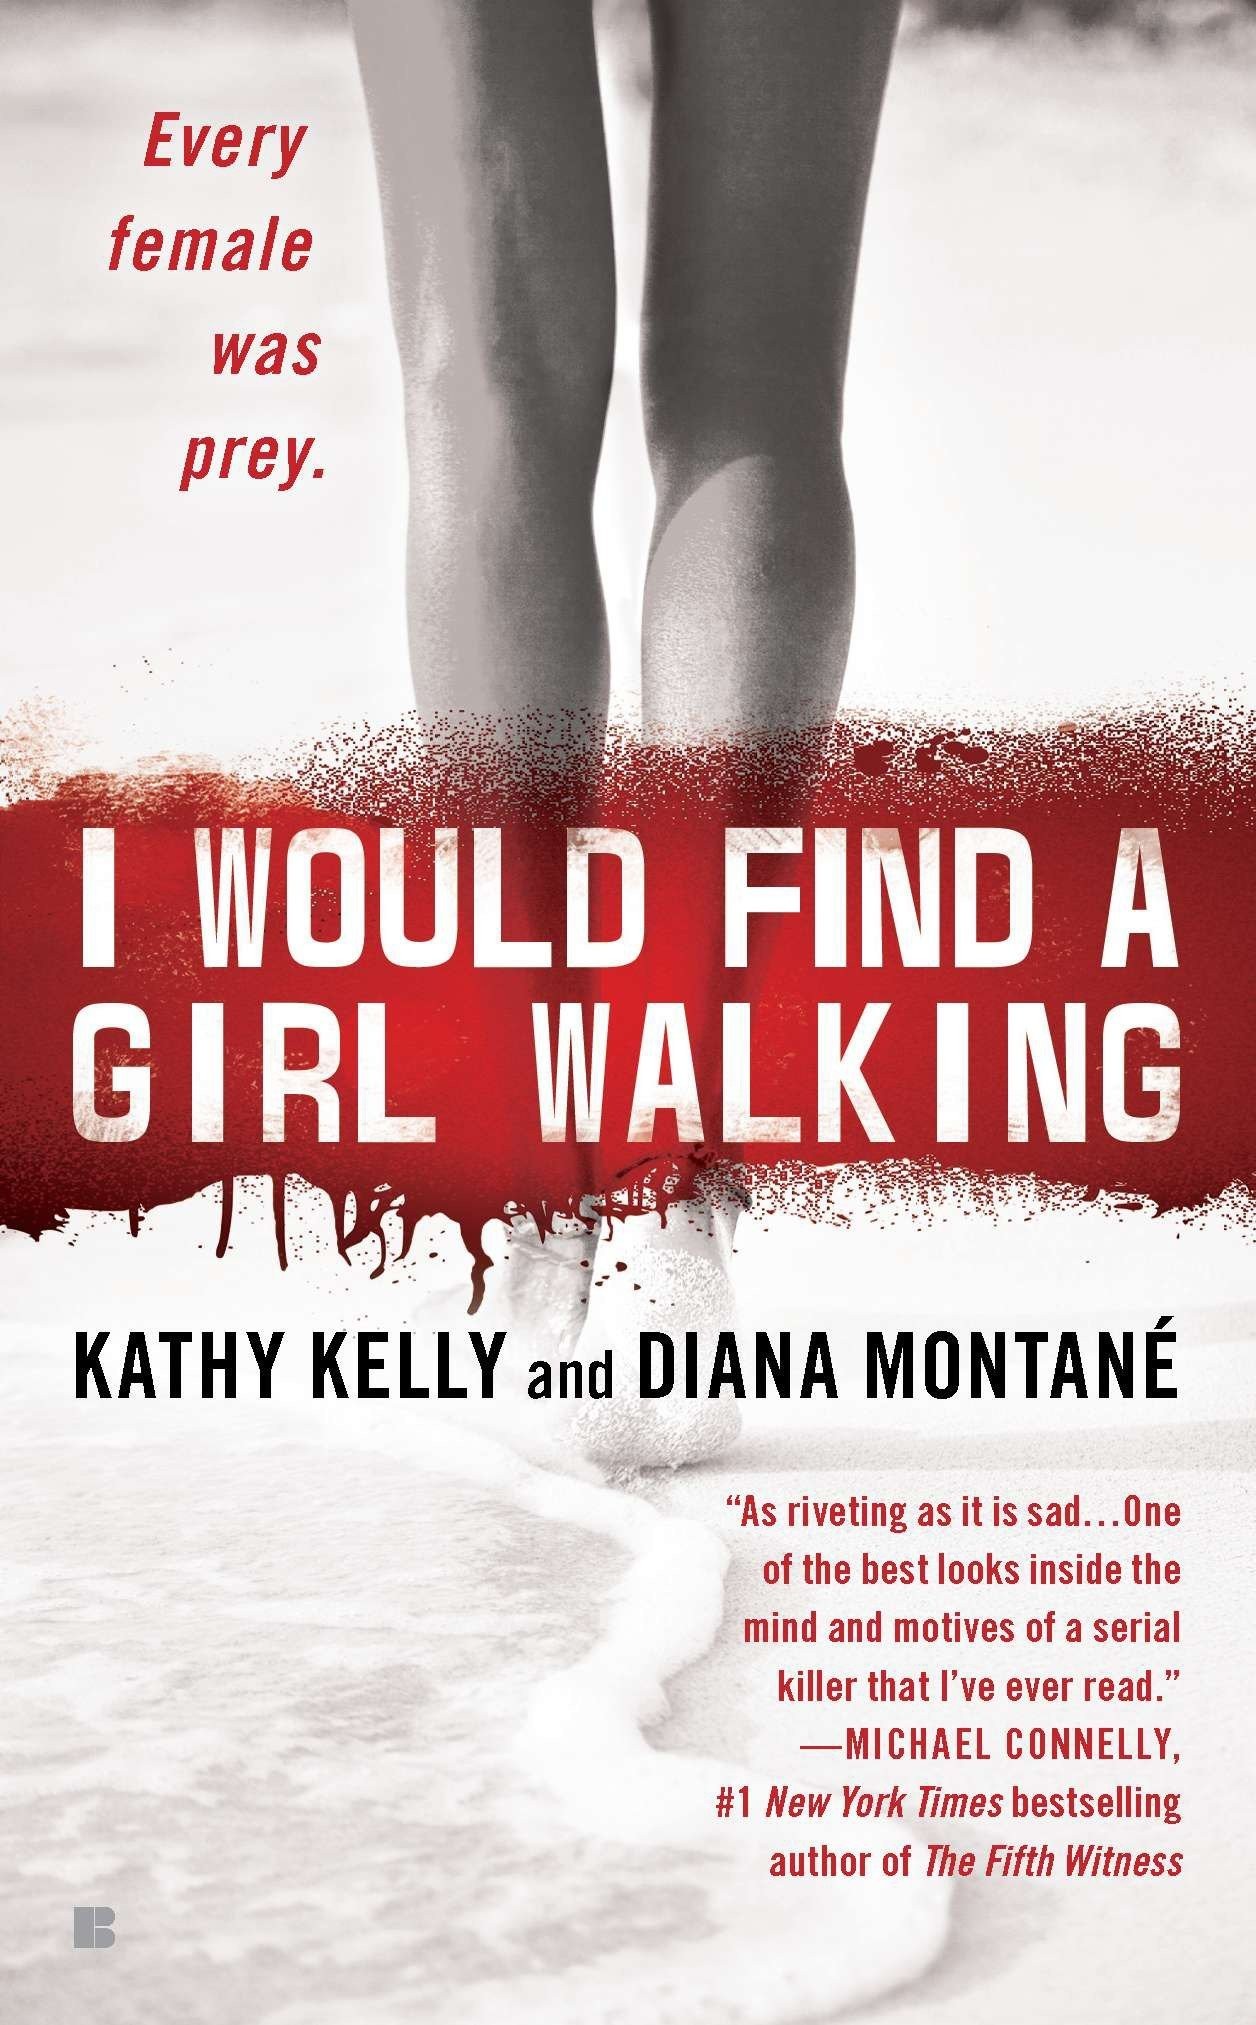 I Would Find a Girl Walking: Amazon.co.uk: Kathy Kelly, Diana Montane:  9780425231869: Books